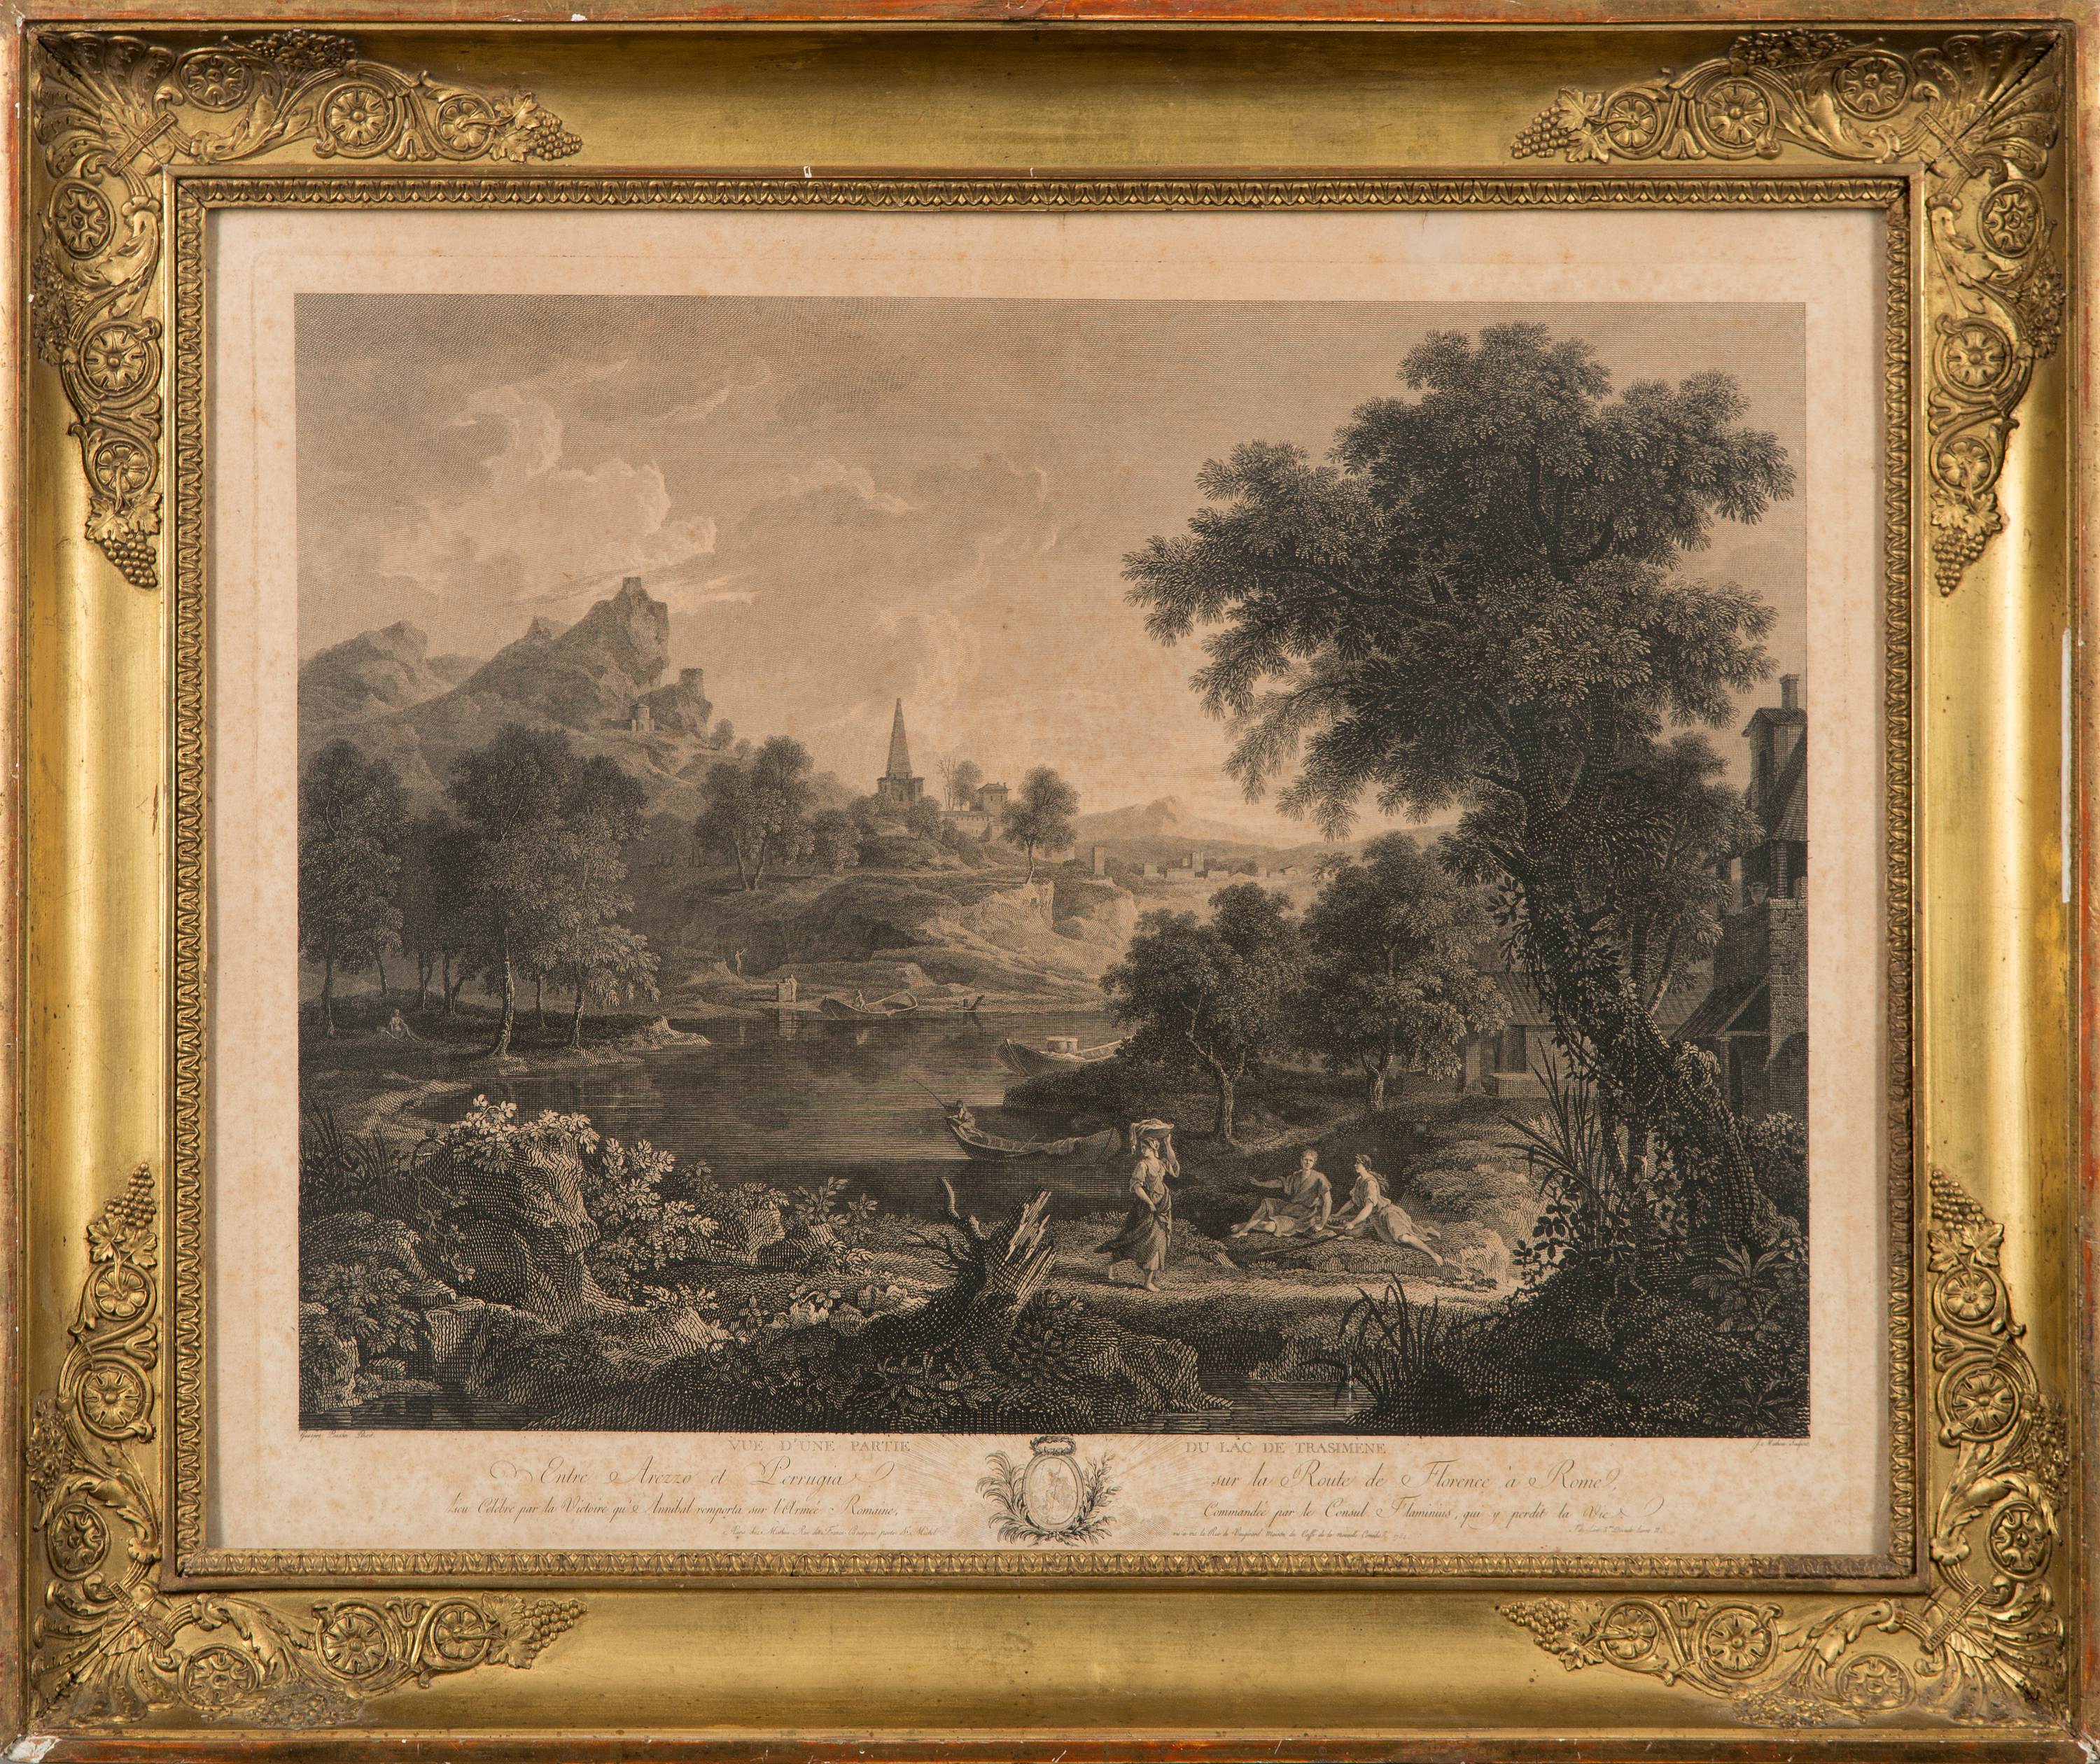 Poussin), after, copper engraving by Jean Mathieu, late 18th